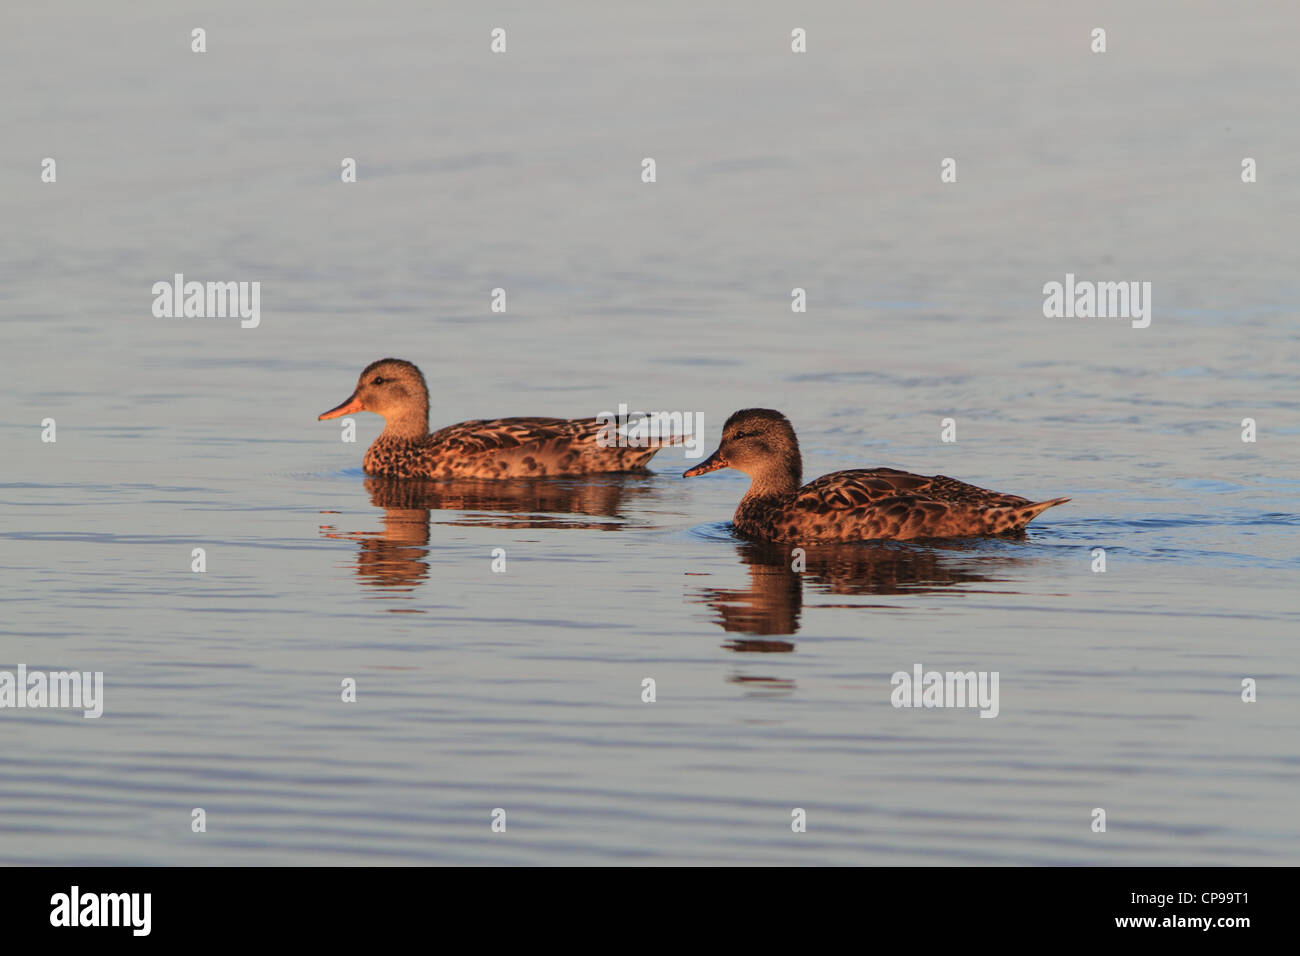 Gadwall (Anas strepera) photographed in the golden morning light at Han Vejle in Denmark - Stock Image